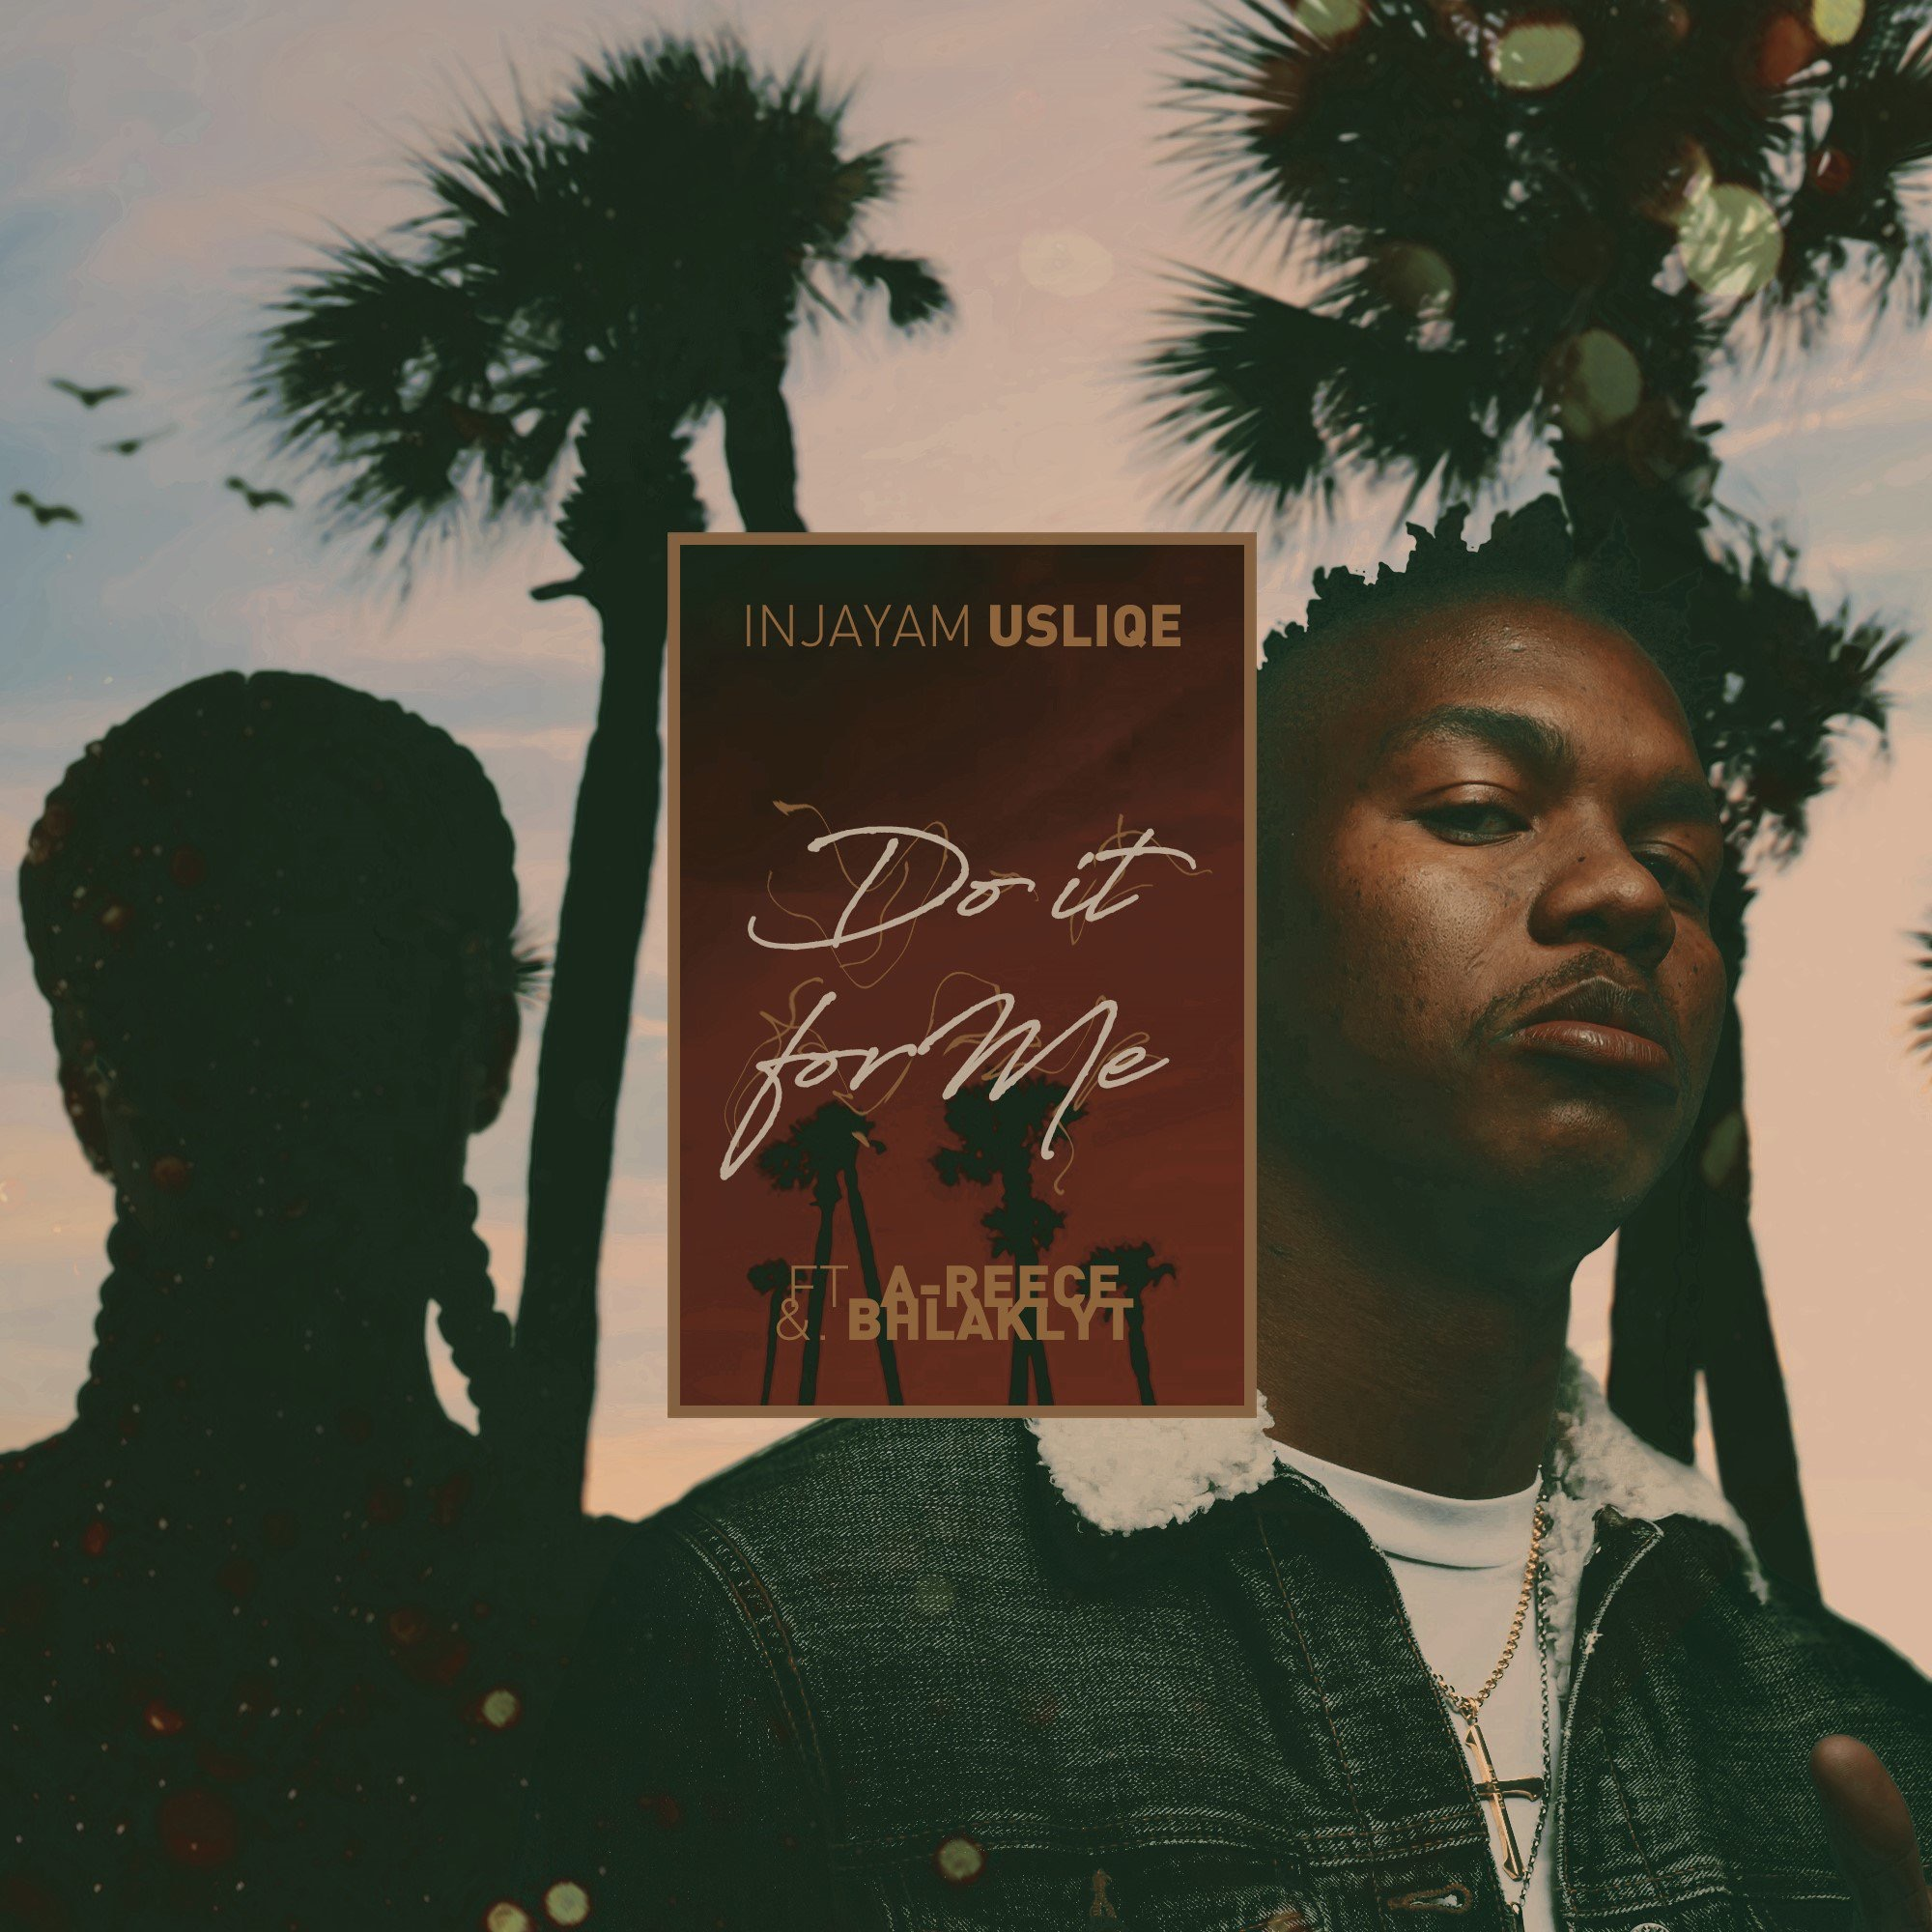 dj sliqe drops new 'do it for me' single ft. a-reece & bhlaklyt DJ Sliqe Drops New 'Do It For Me' Single Ft. A-Reece & BHLAKLYT IMG 4666